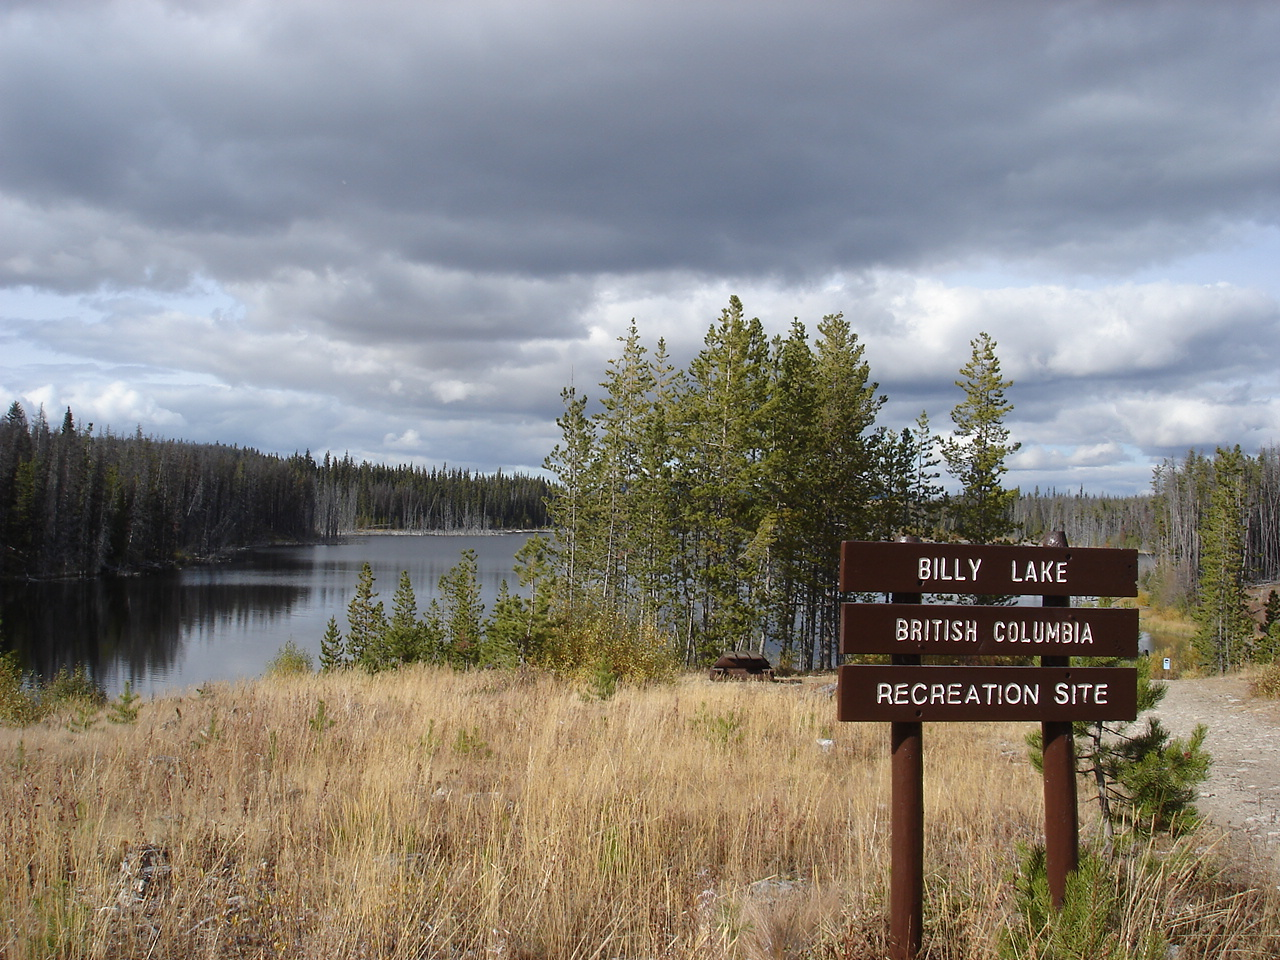 Billy Lake